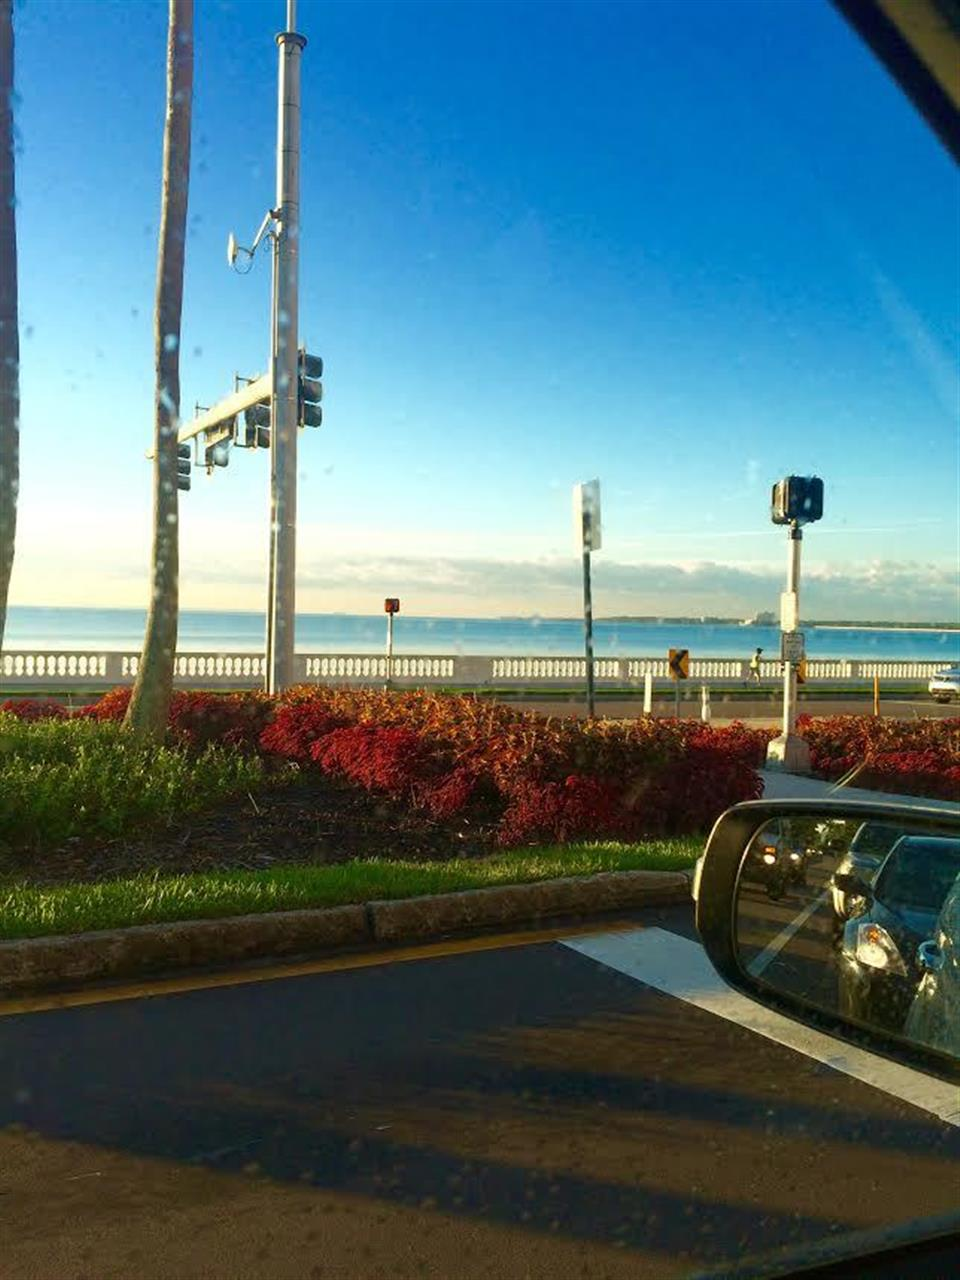 Fall commute views #bayshoreboulevard #southtampa #tampabay